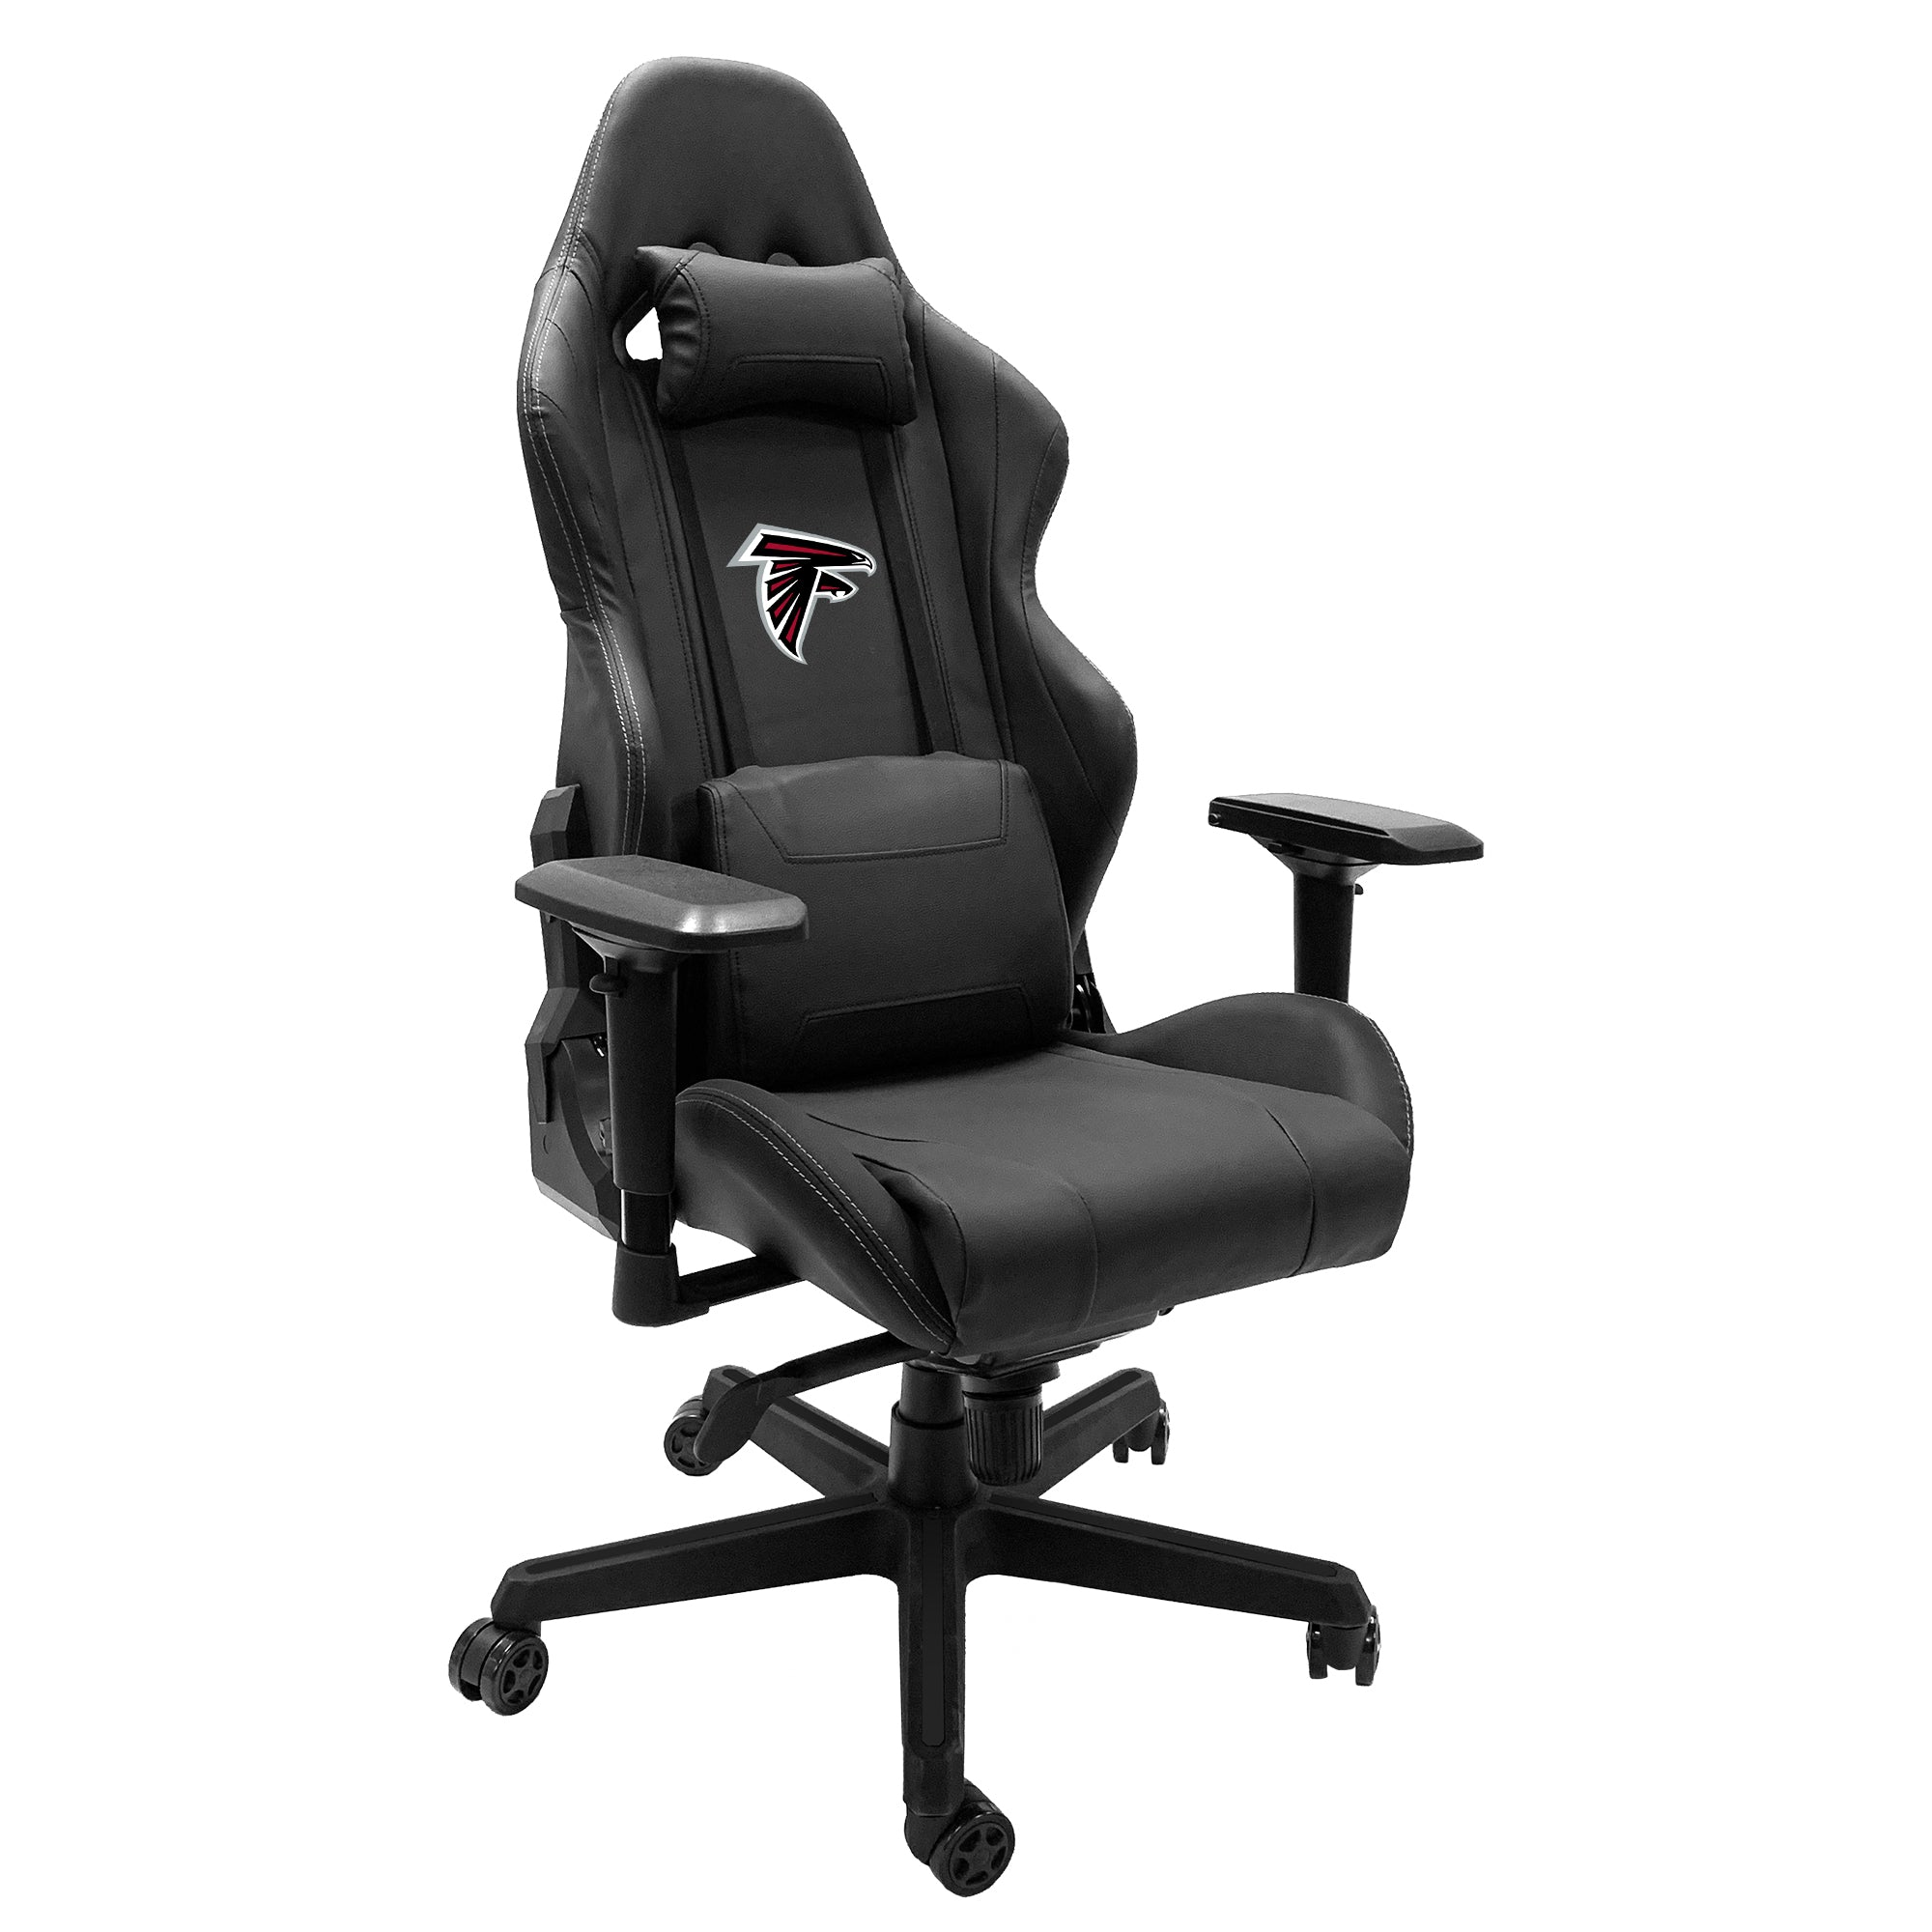 Xpression Gaming Chair with Atlanta Falcons Primary Logo